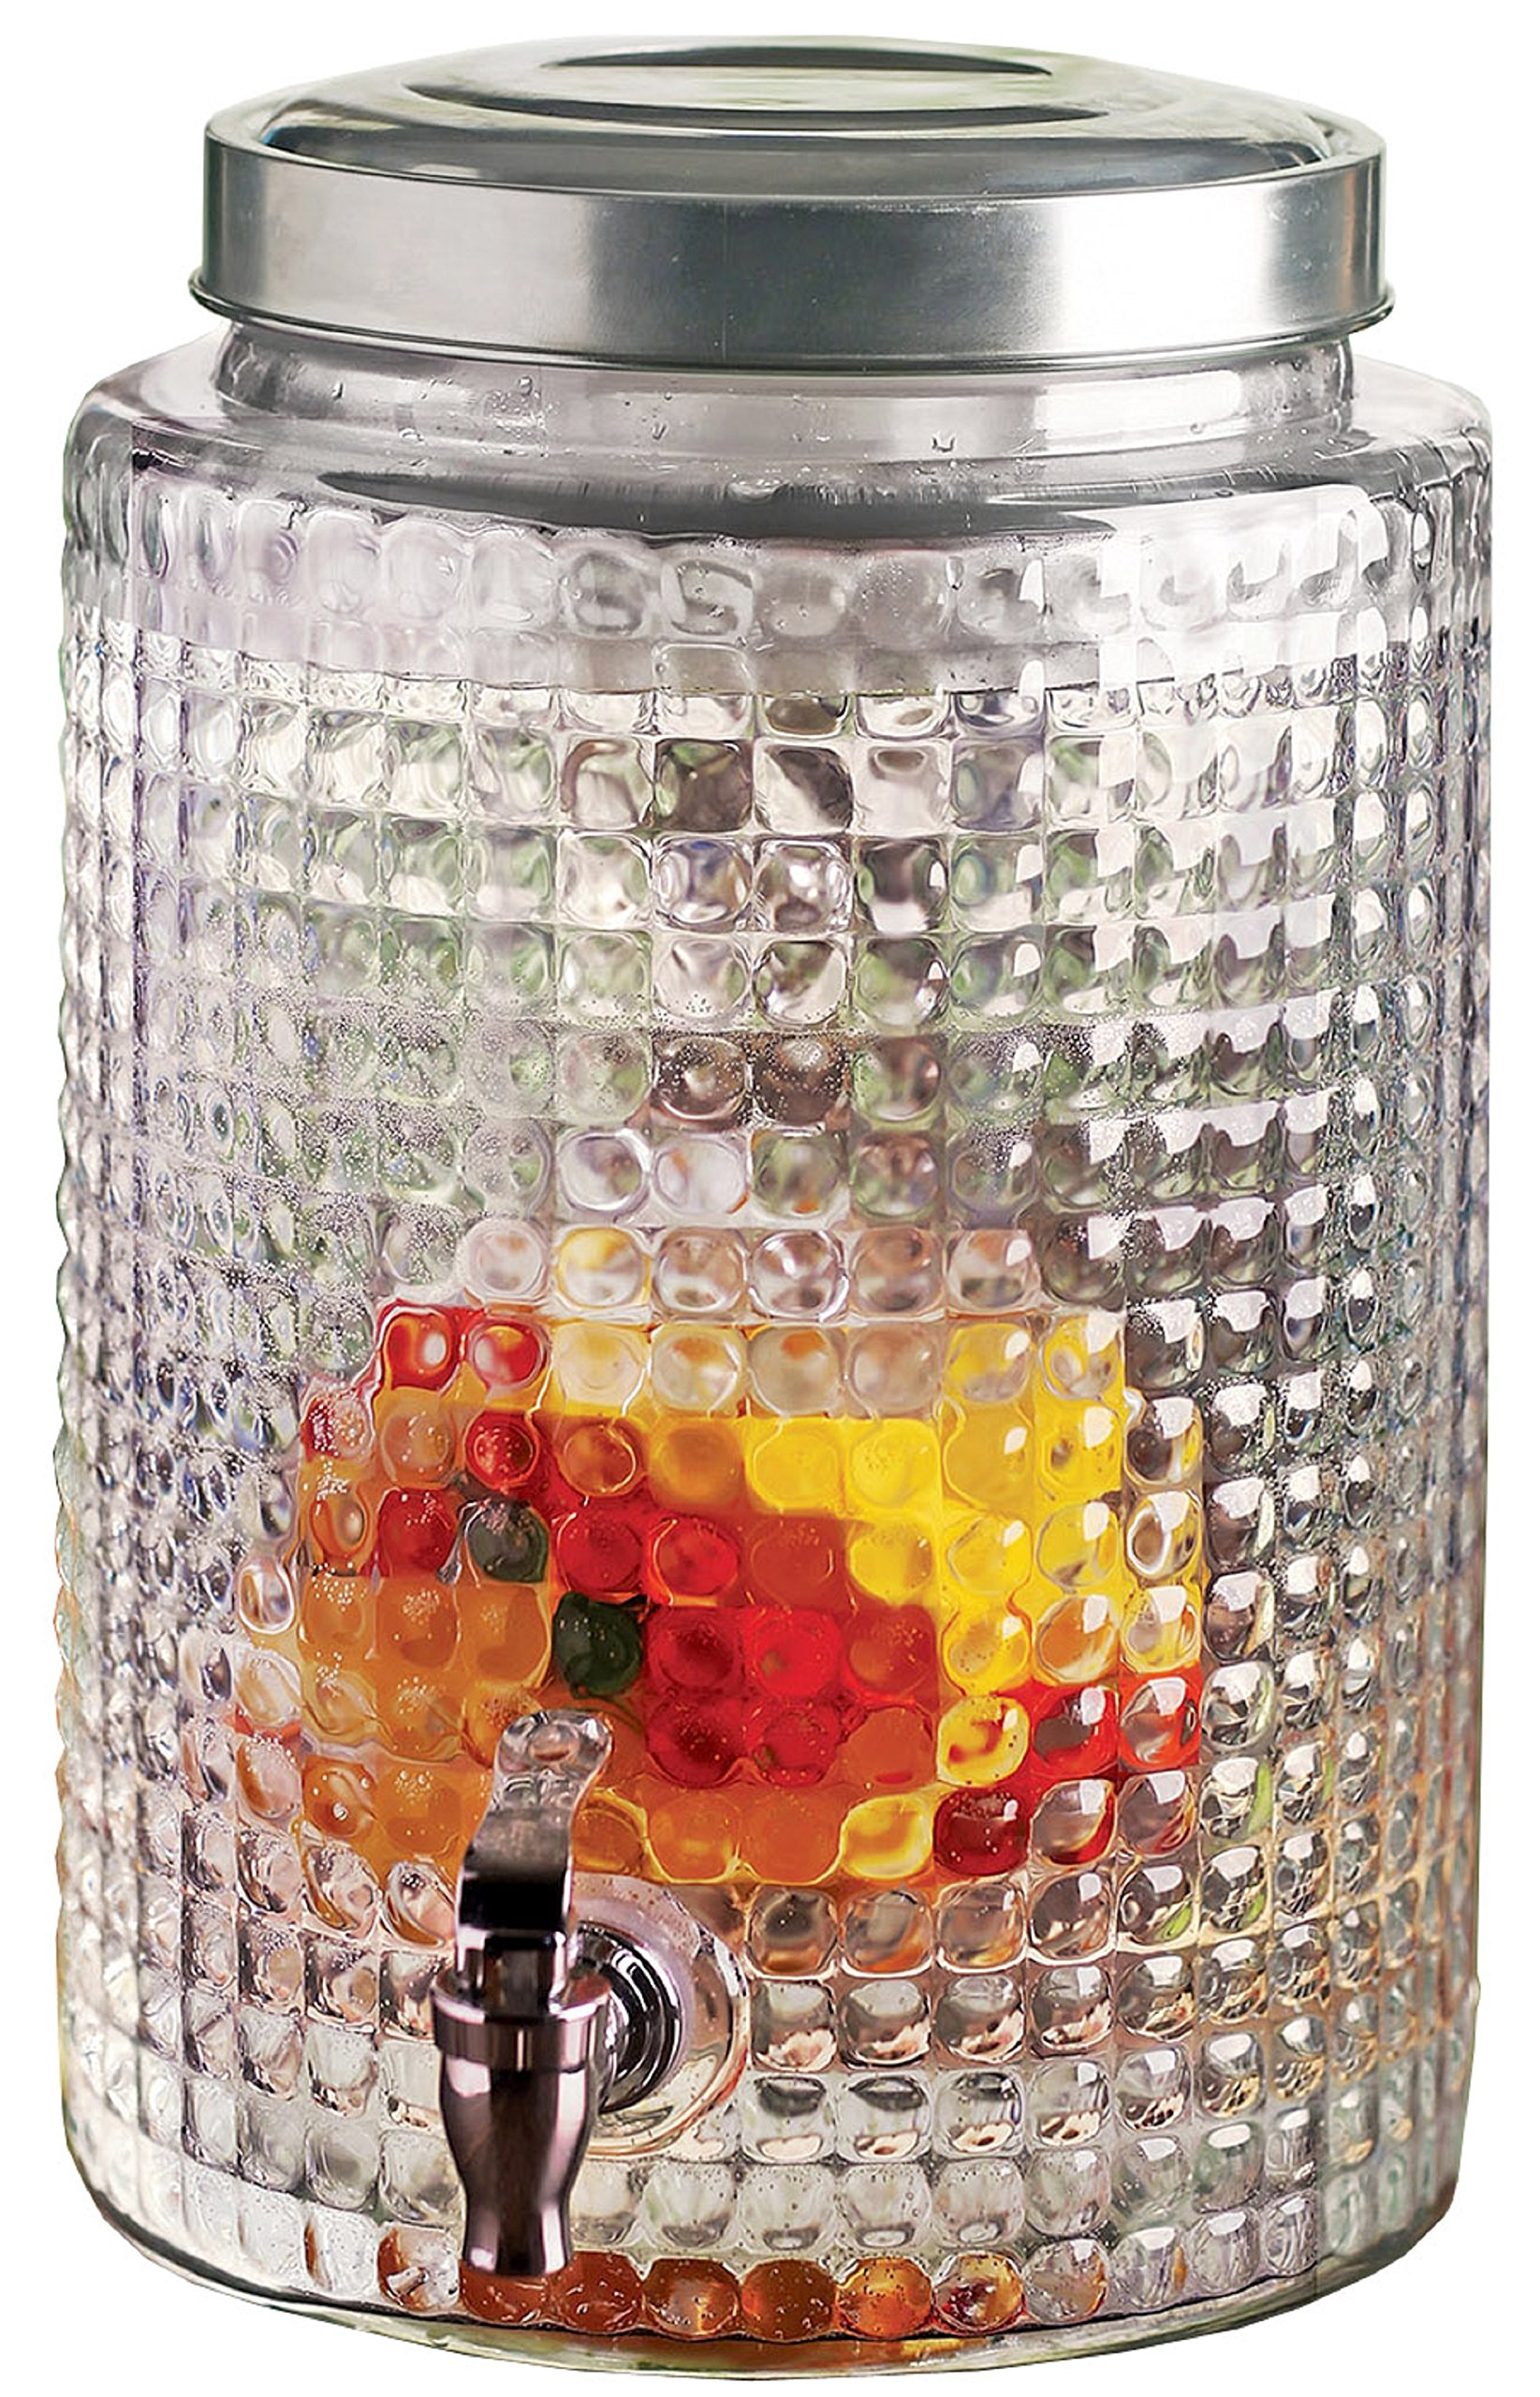 Circleware Sun Tea Mason Jar Beverage Dispenser with Fruit Infuser, Ice Insert and Metal Lid, Entertainment Glassware Drink Water Pitcher for Juice, Beer & Cold Drinks, Huge 2.7 Gallon Windowpane